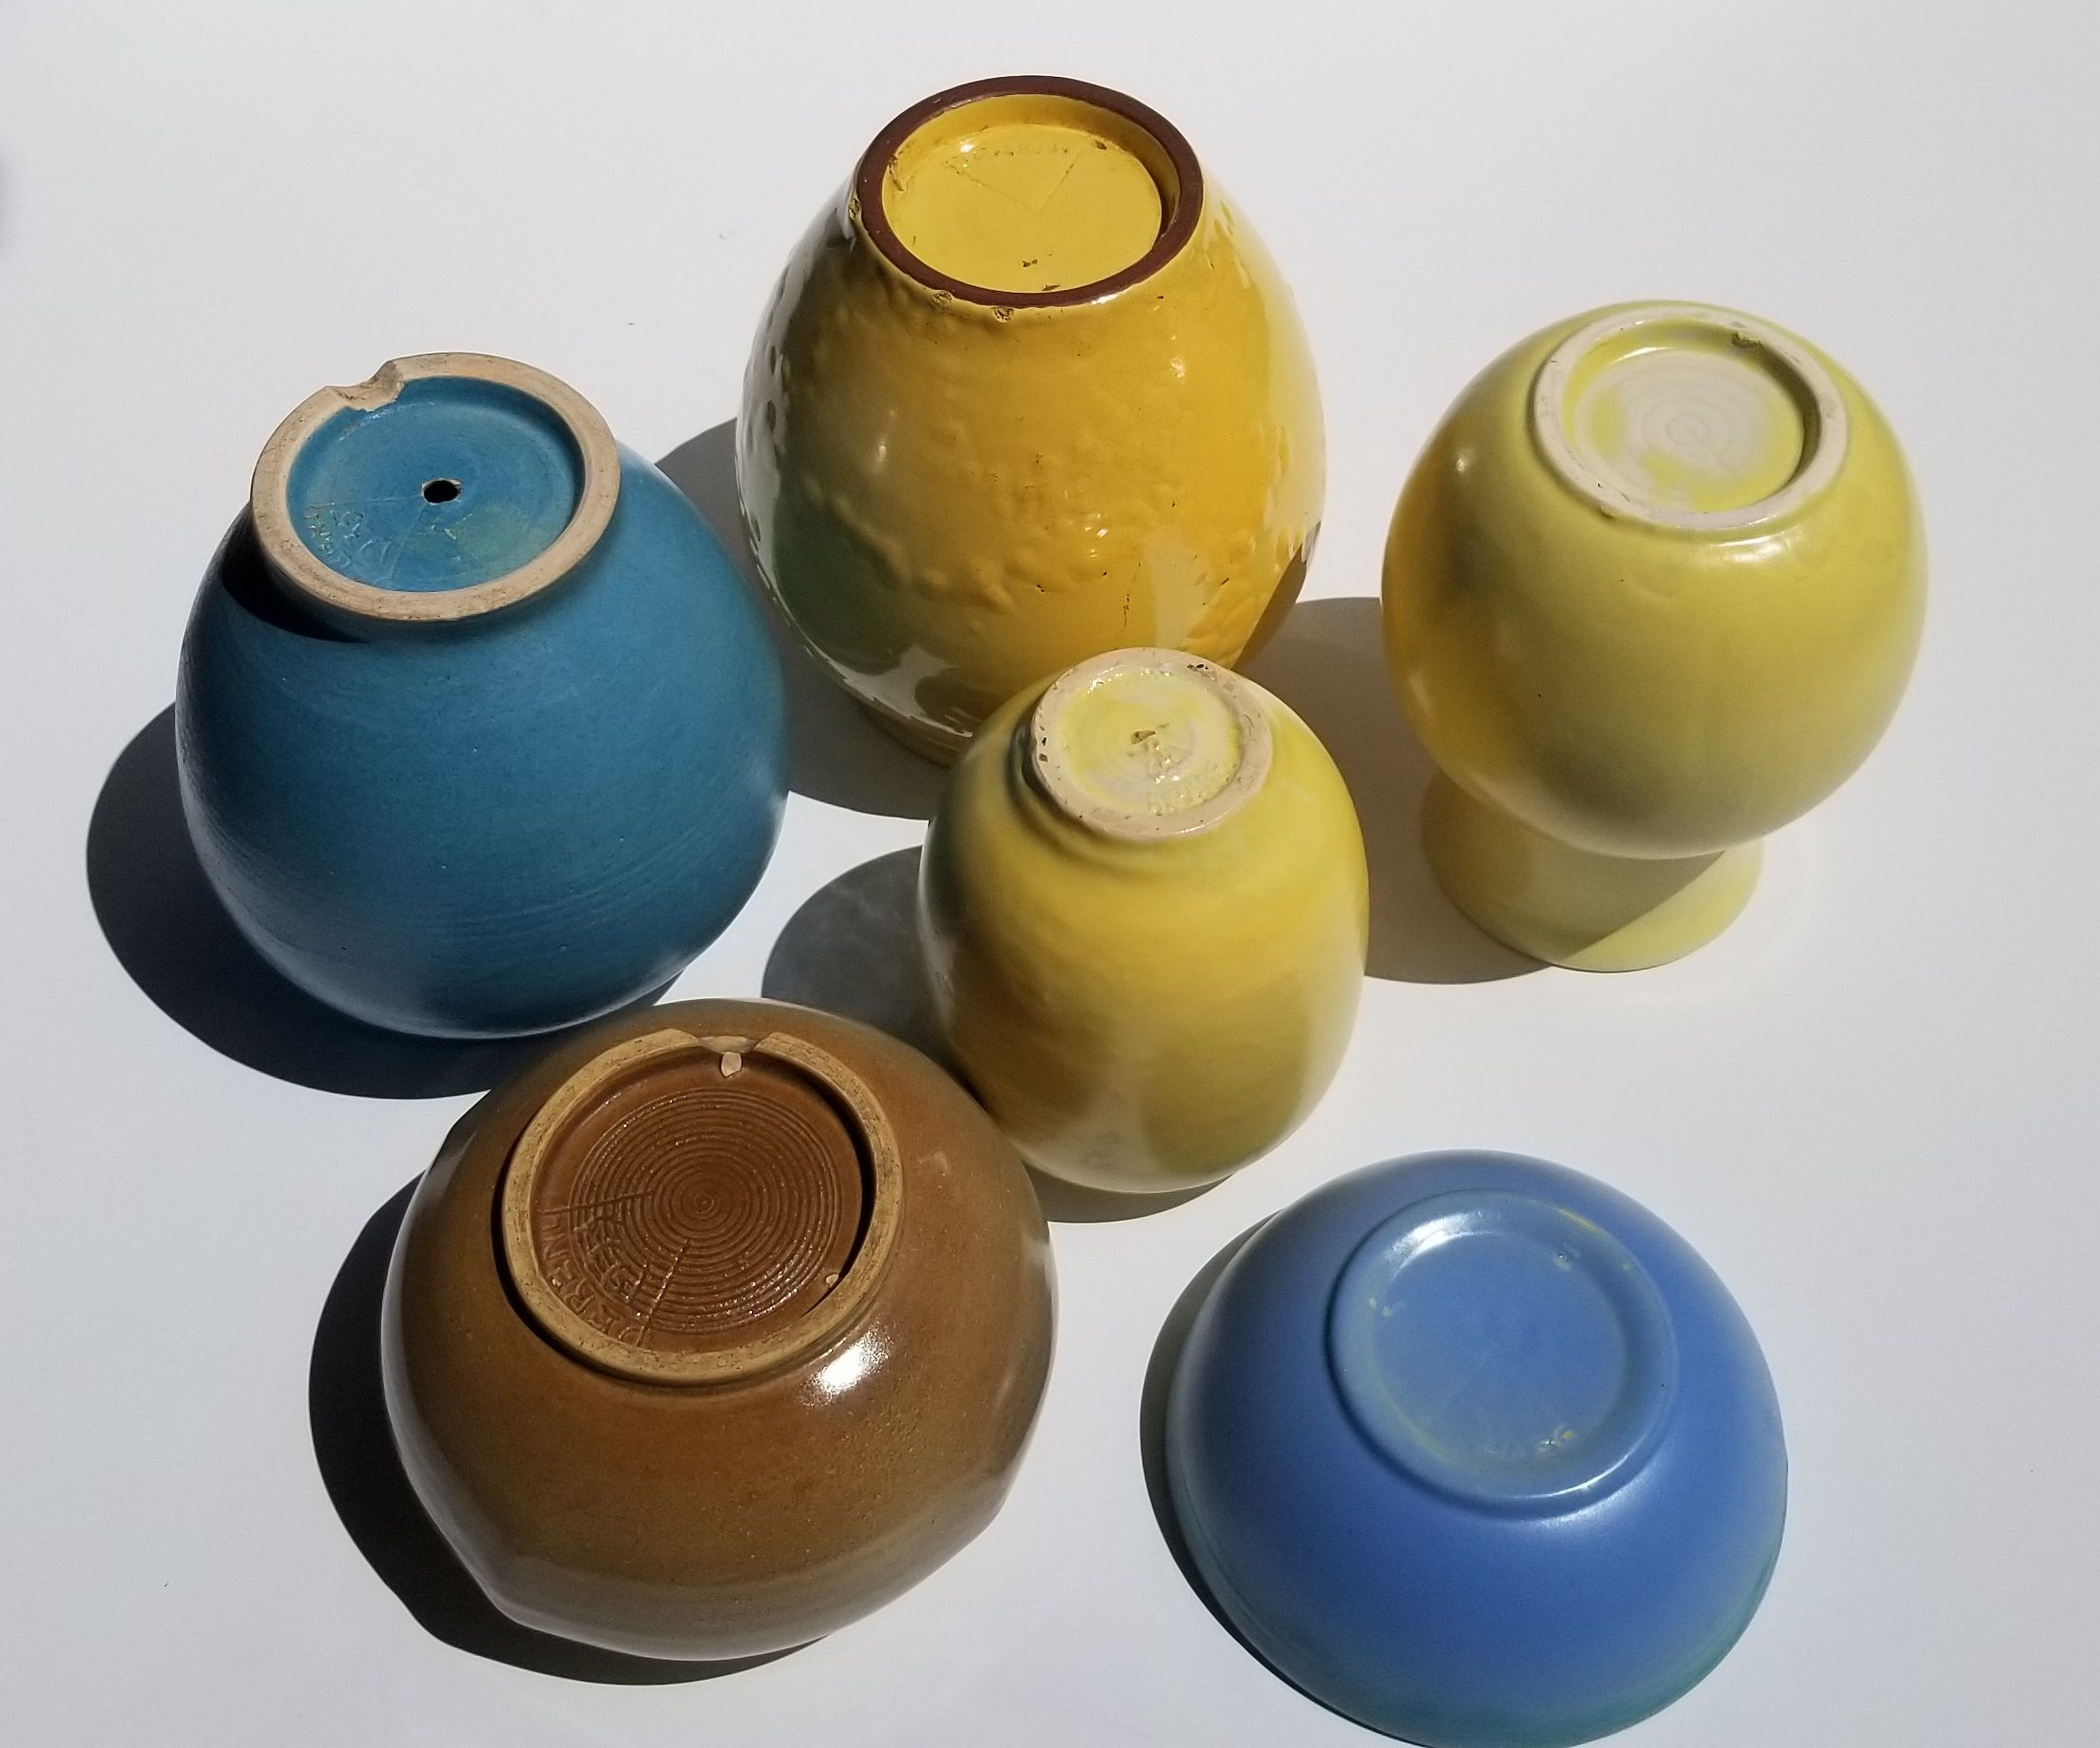 Pin By Garner Garner On Andrew Pereny Pottery Ceramic Engineering Pottery Art Pottery